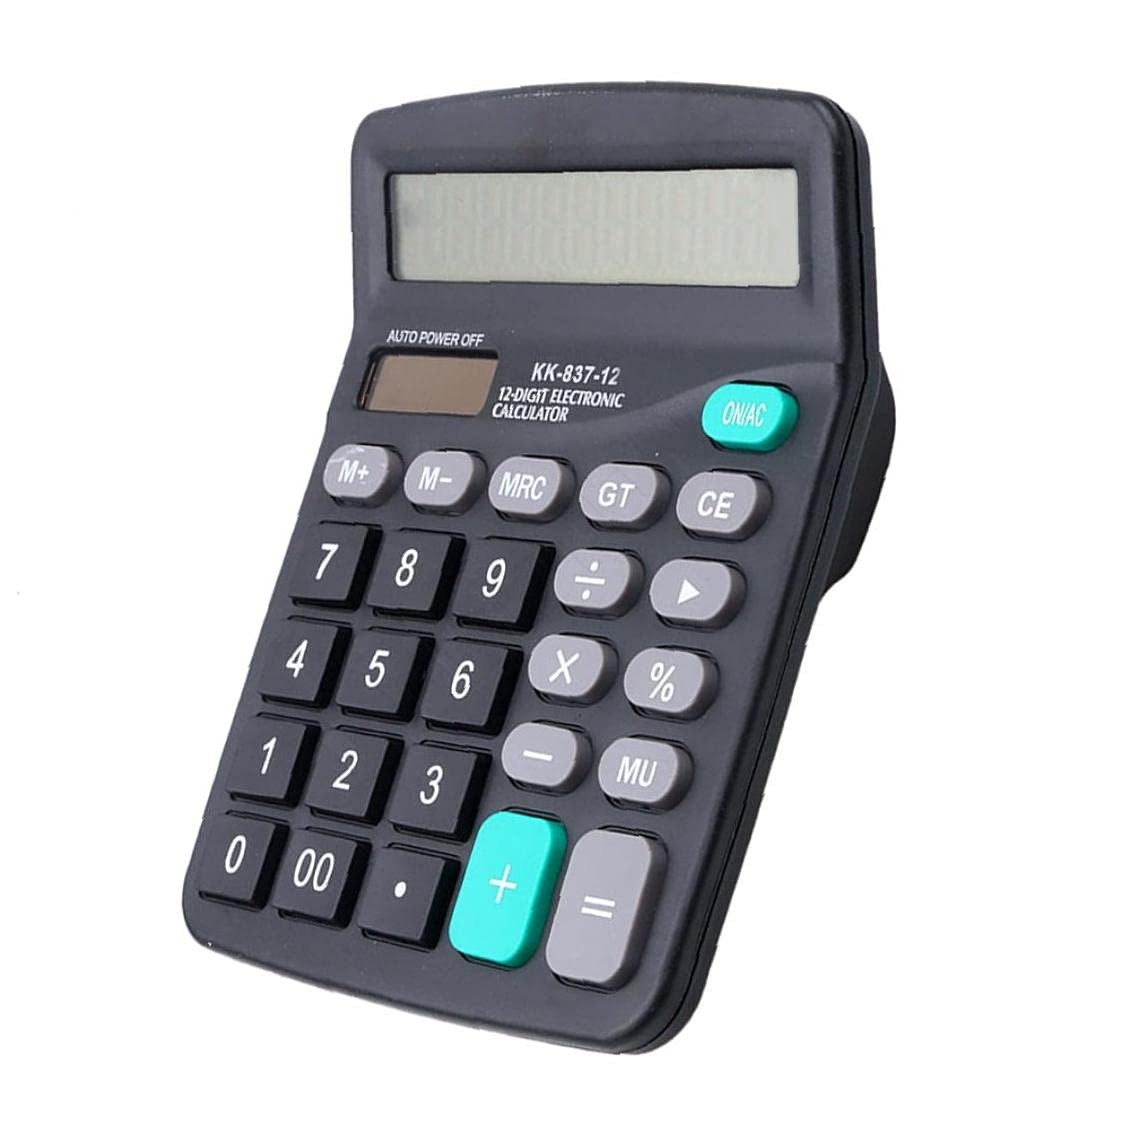 12 Digit Desk Calculator Jumbo At the price Large Buttons Desktop Courier shipping free shipping Solar Finan